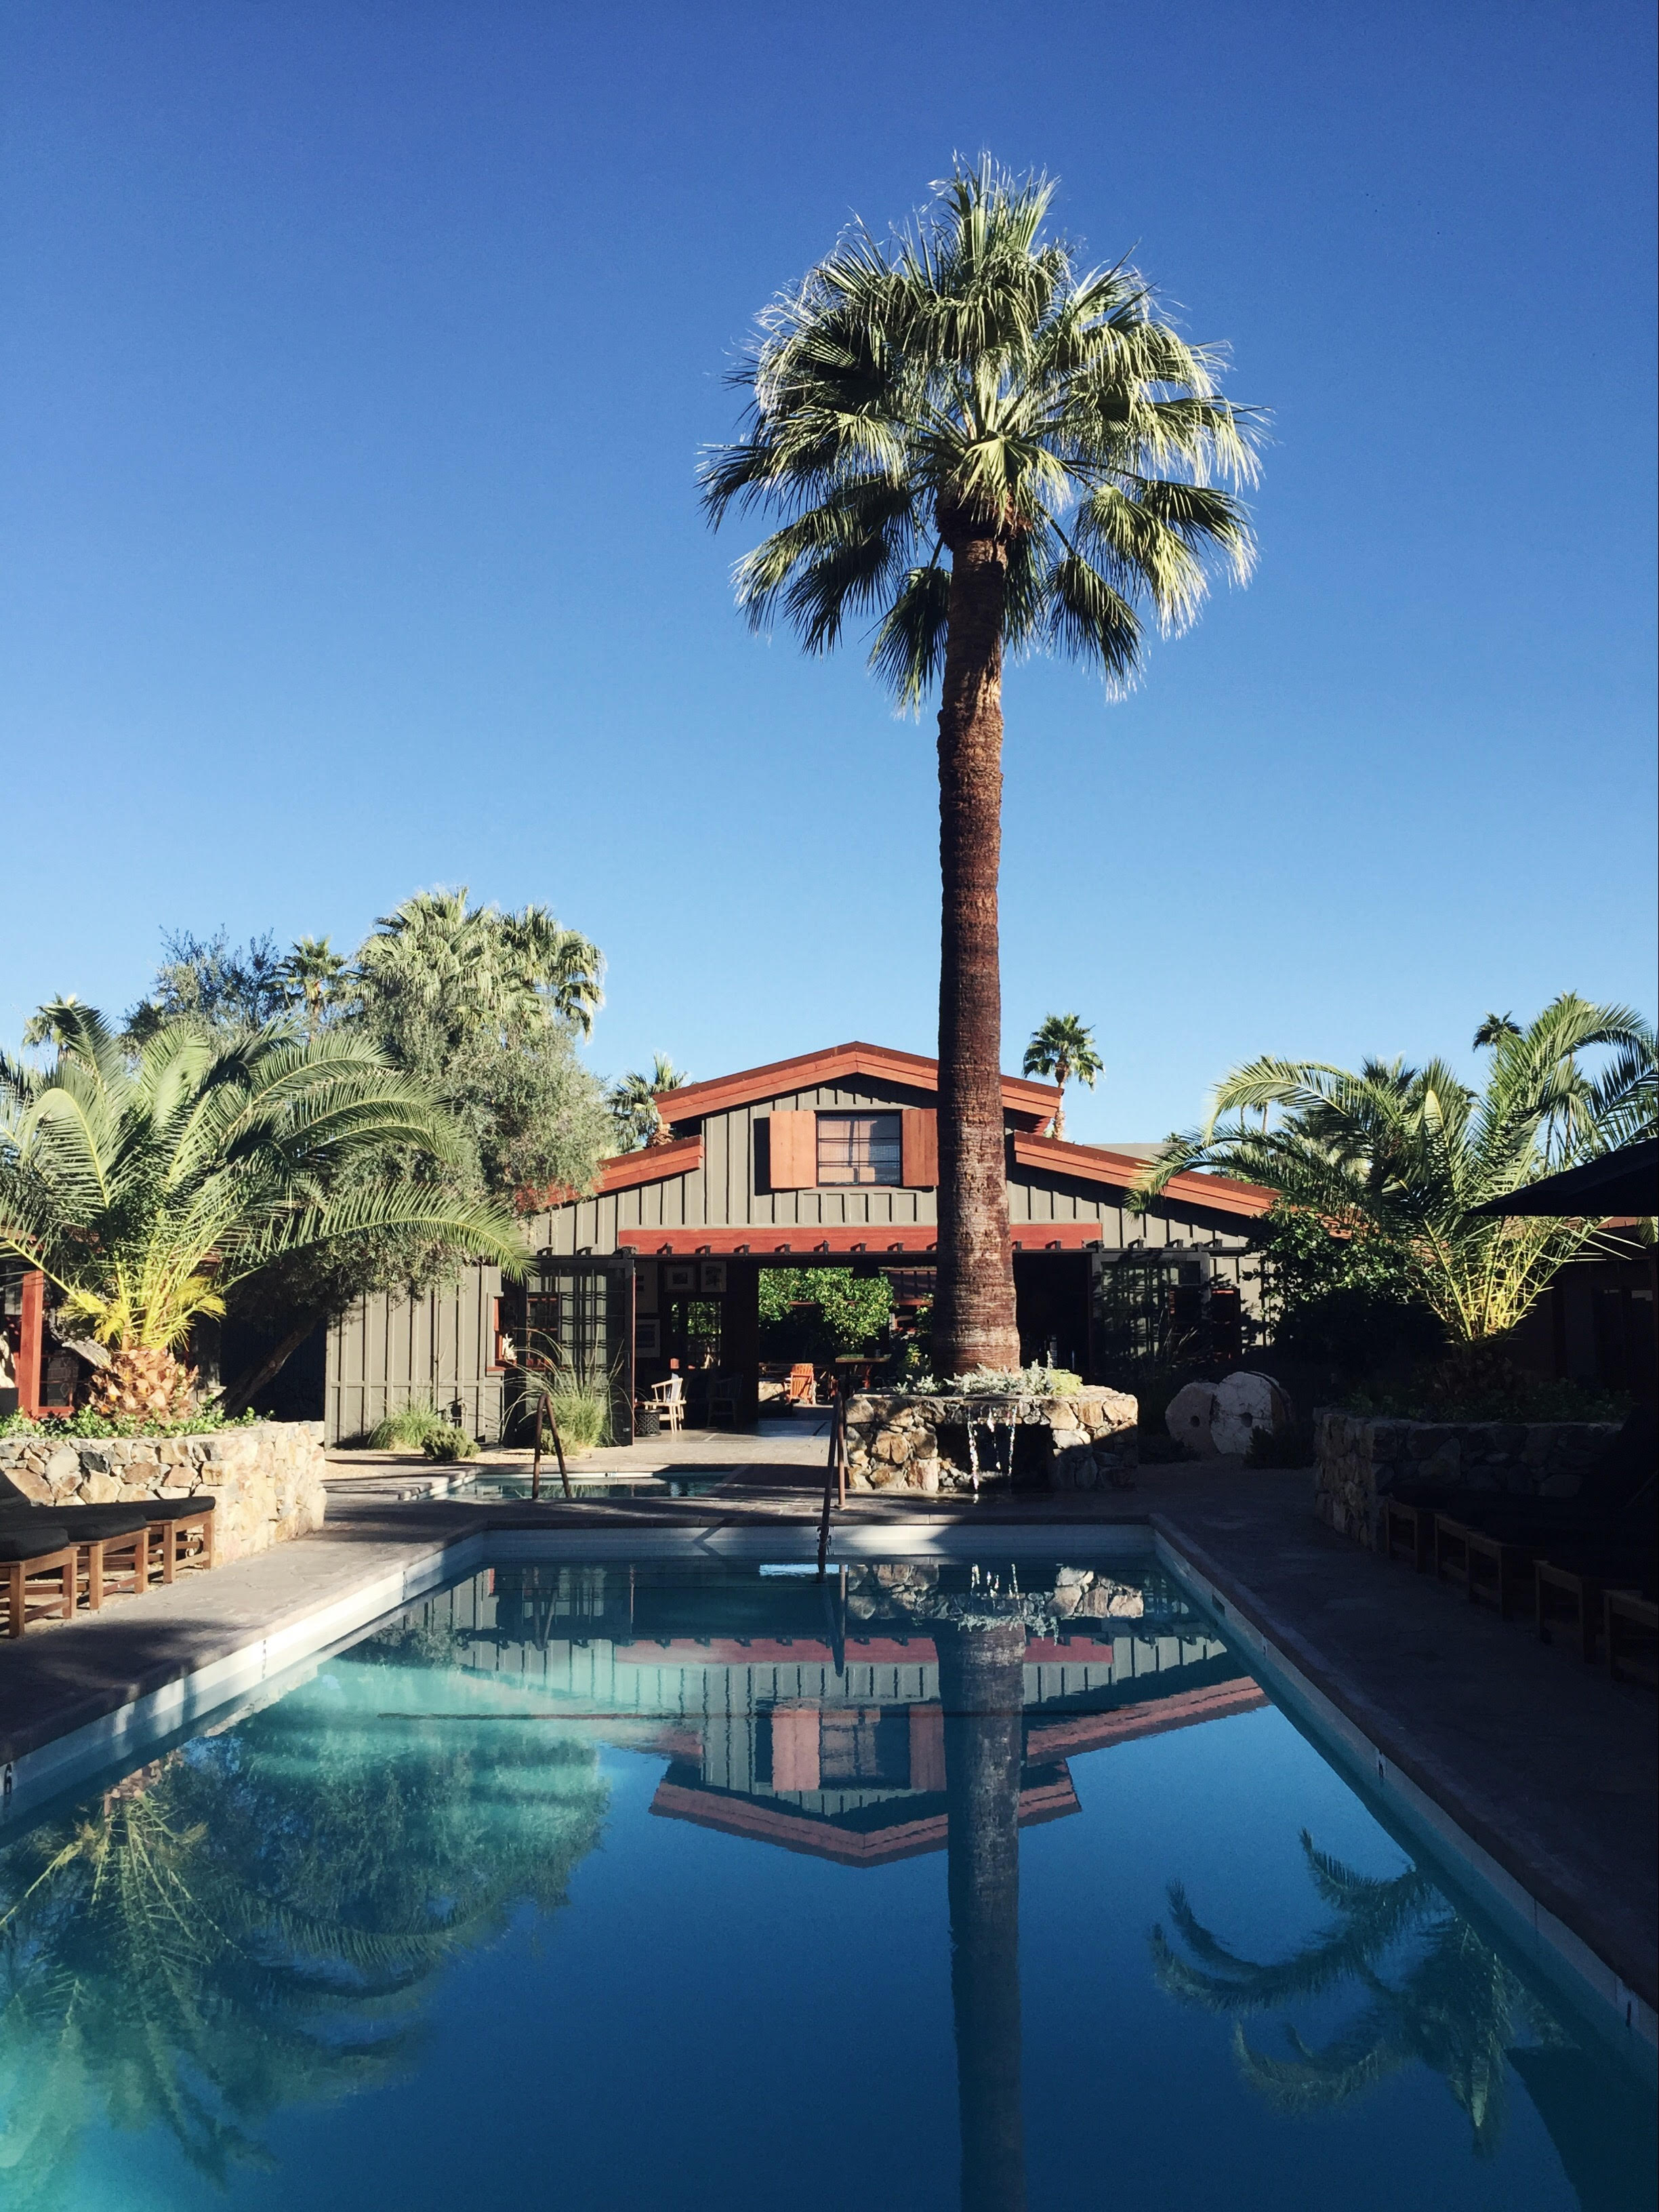 """Photography by Meghan Plowman, """"Palm Springs, Iconic"""" travel guide"""